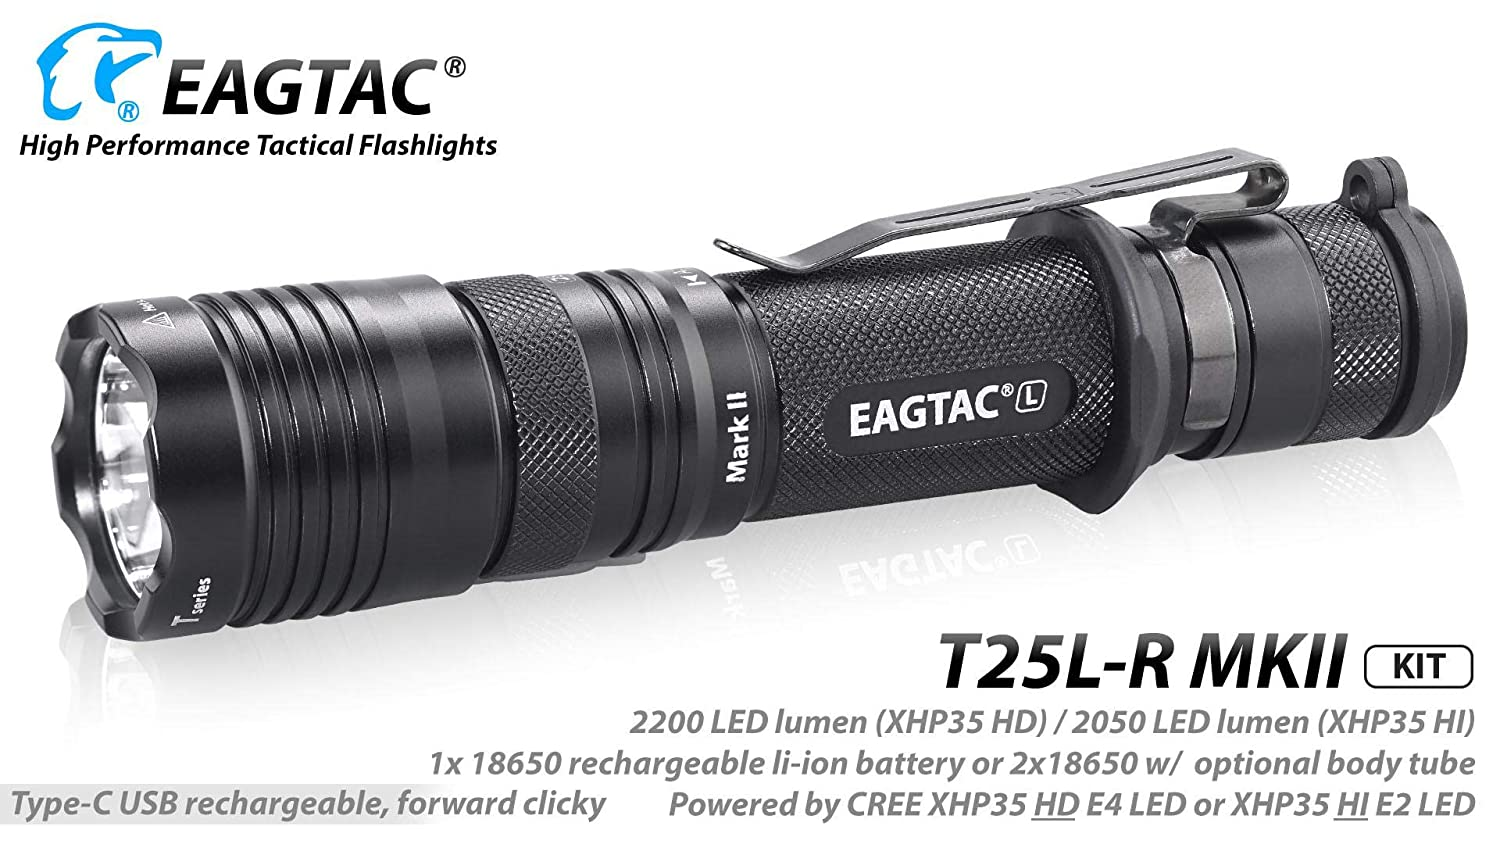 Eagletac T25LR MKII CREE XHP35 HI D4 Neutral Weiß LED Rechargeable Flashlight KIT-1900 Lumens - Newly Upgraded MKII